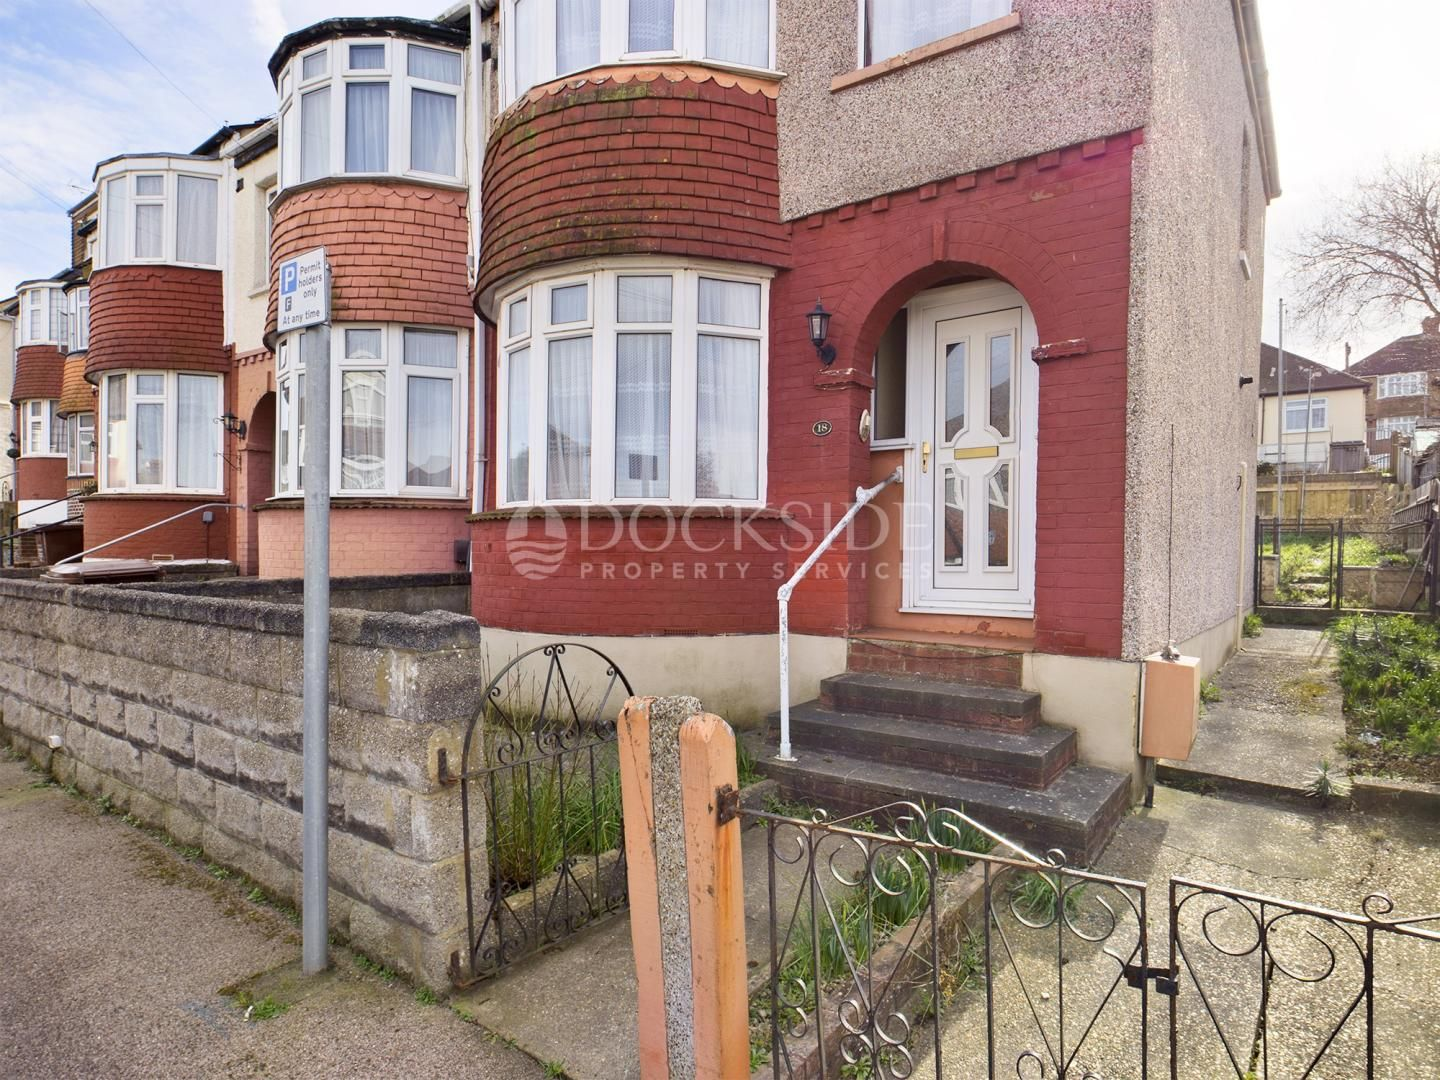 3 bed house for sale in Shottenden Road - Property Image 1